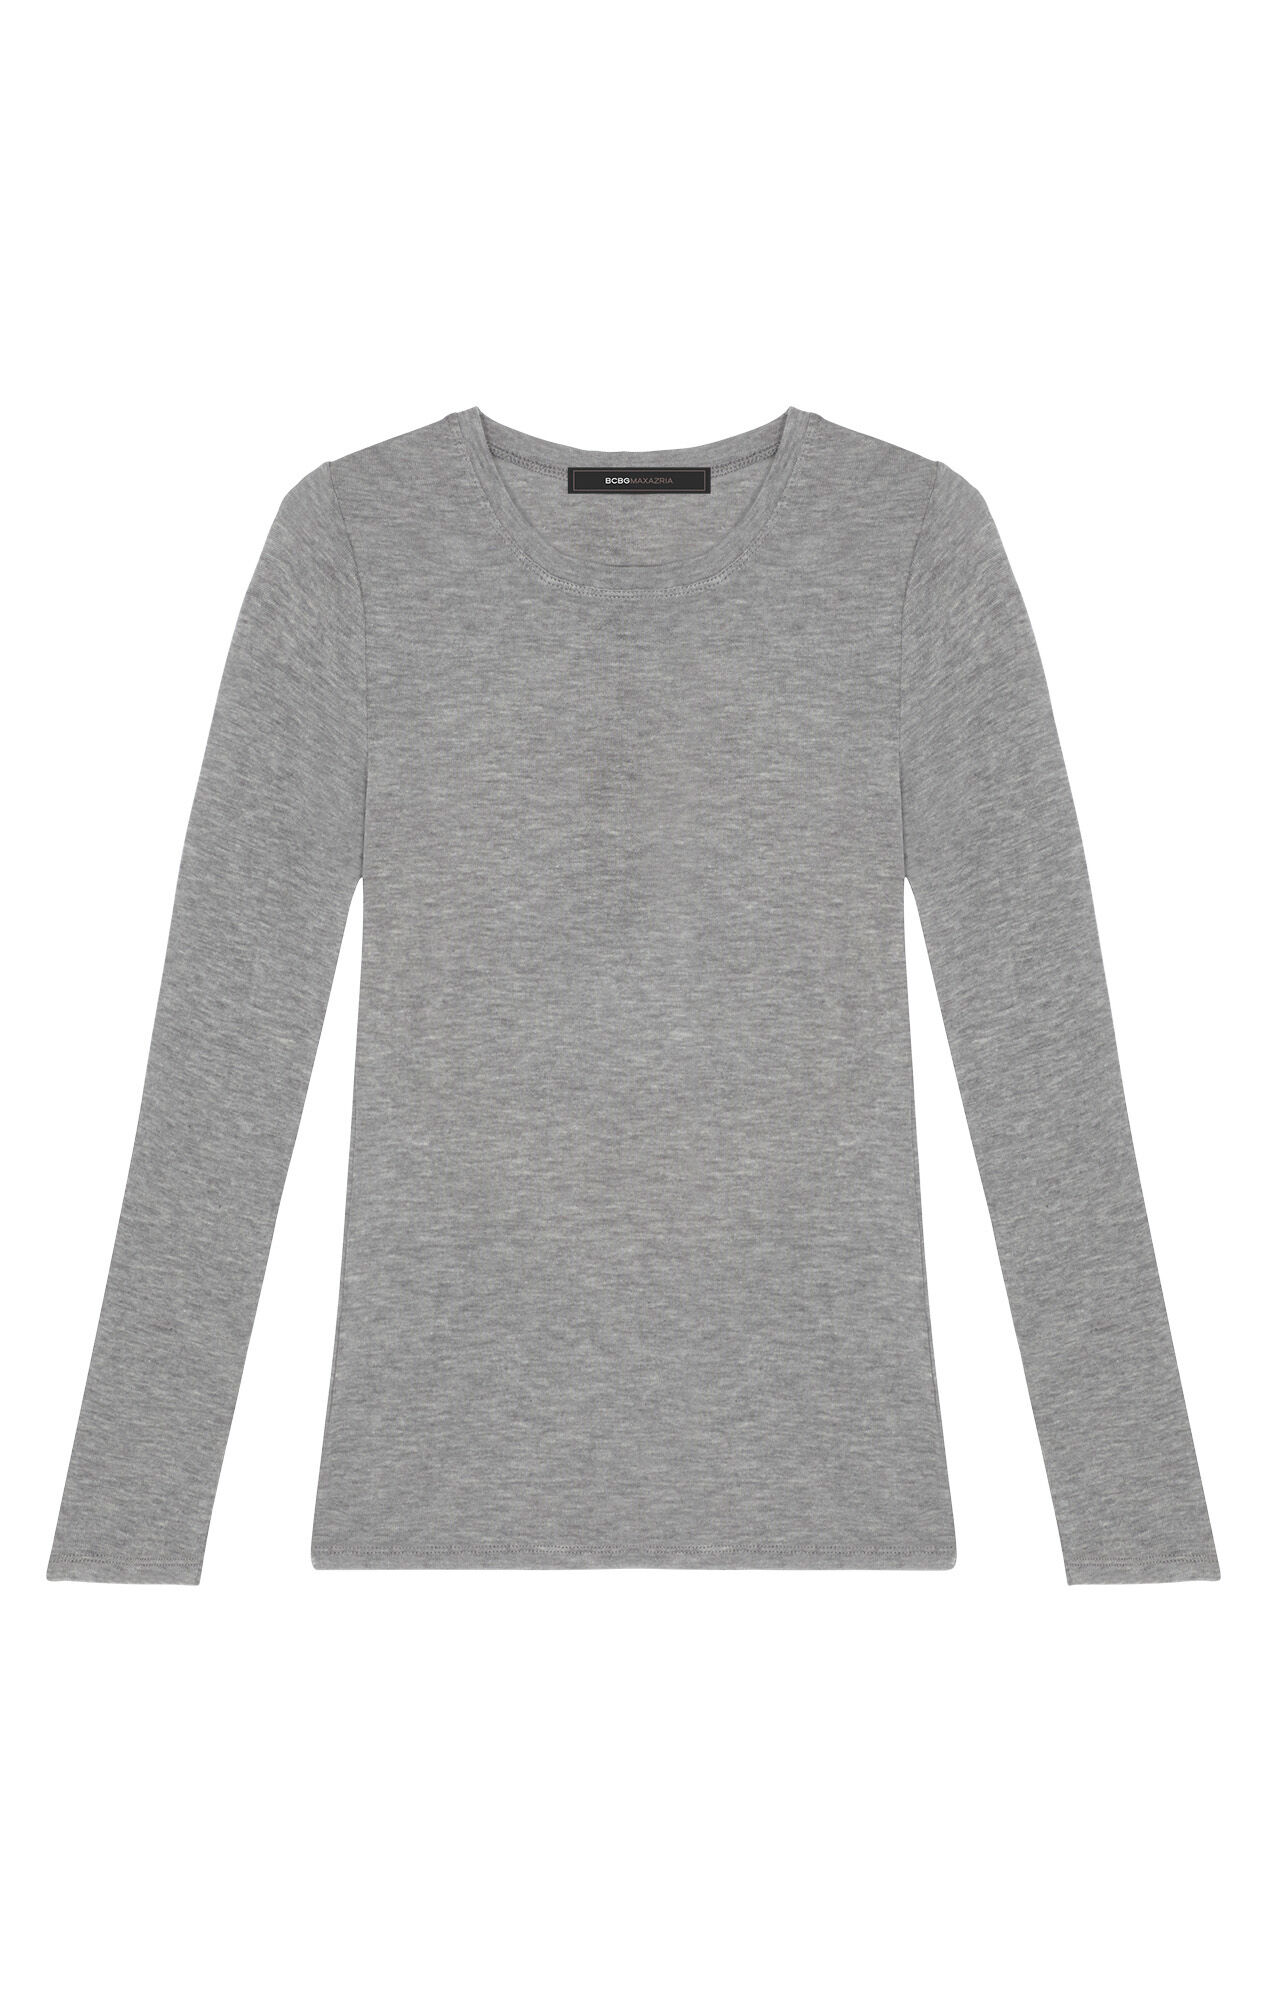 Agda Crewneck Long-Sleeve Tee